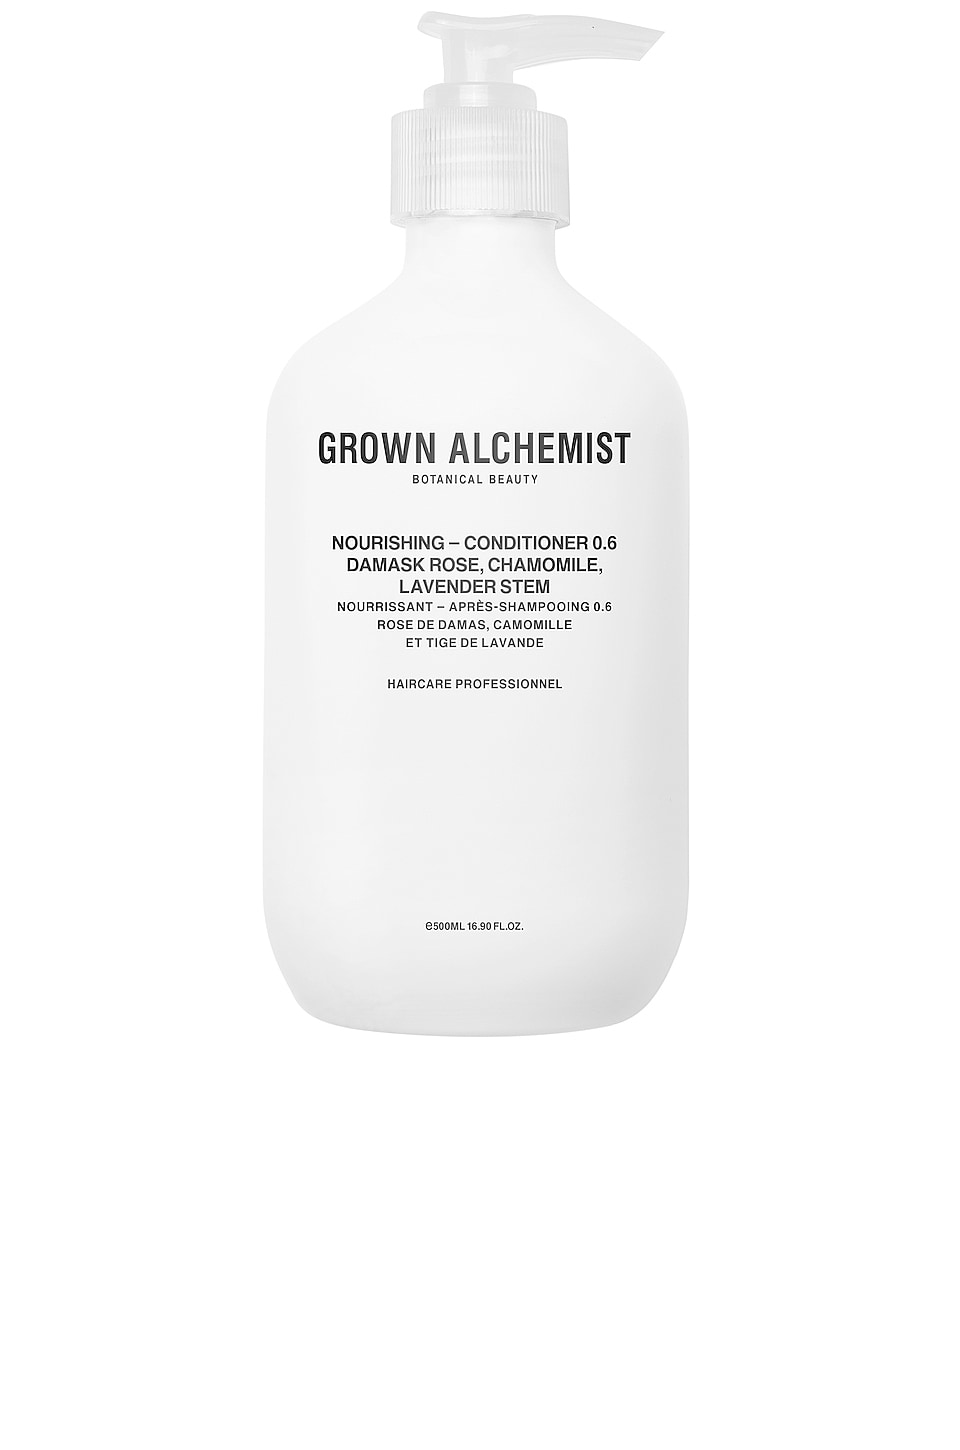 Grown Alchemist Nourishing Conditioner 0.6 in Damask Rose & Chamomile & Lavender Stem